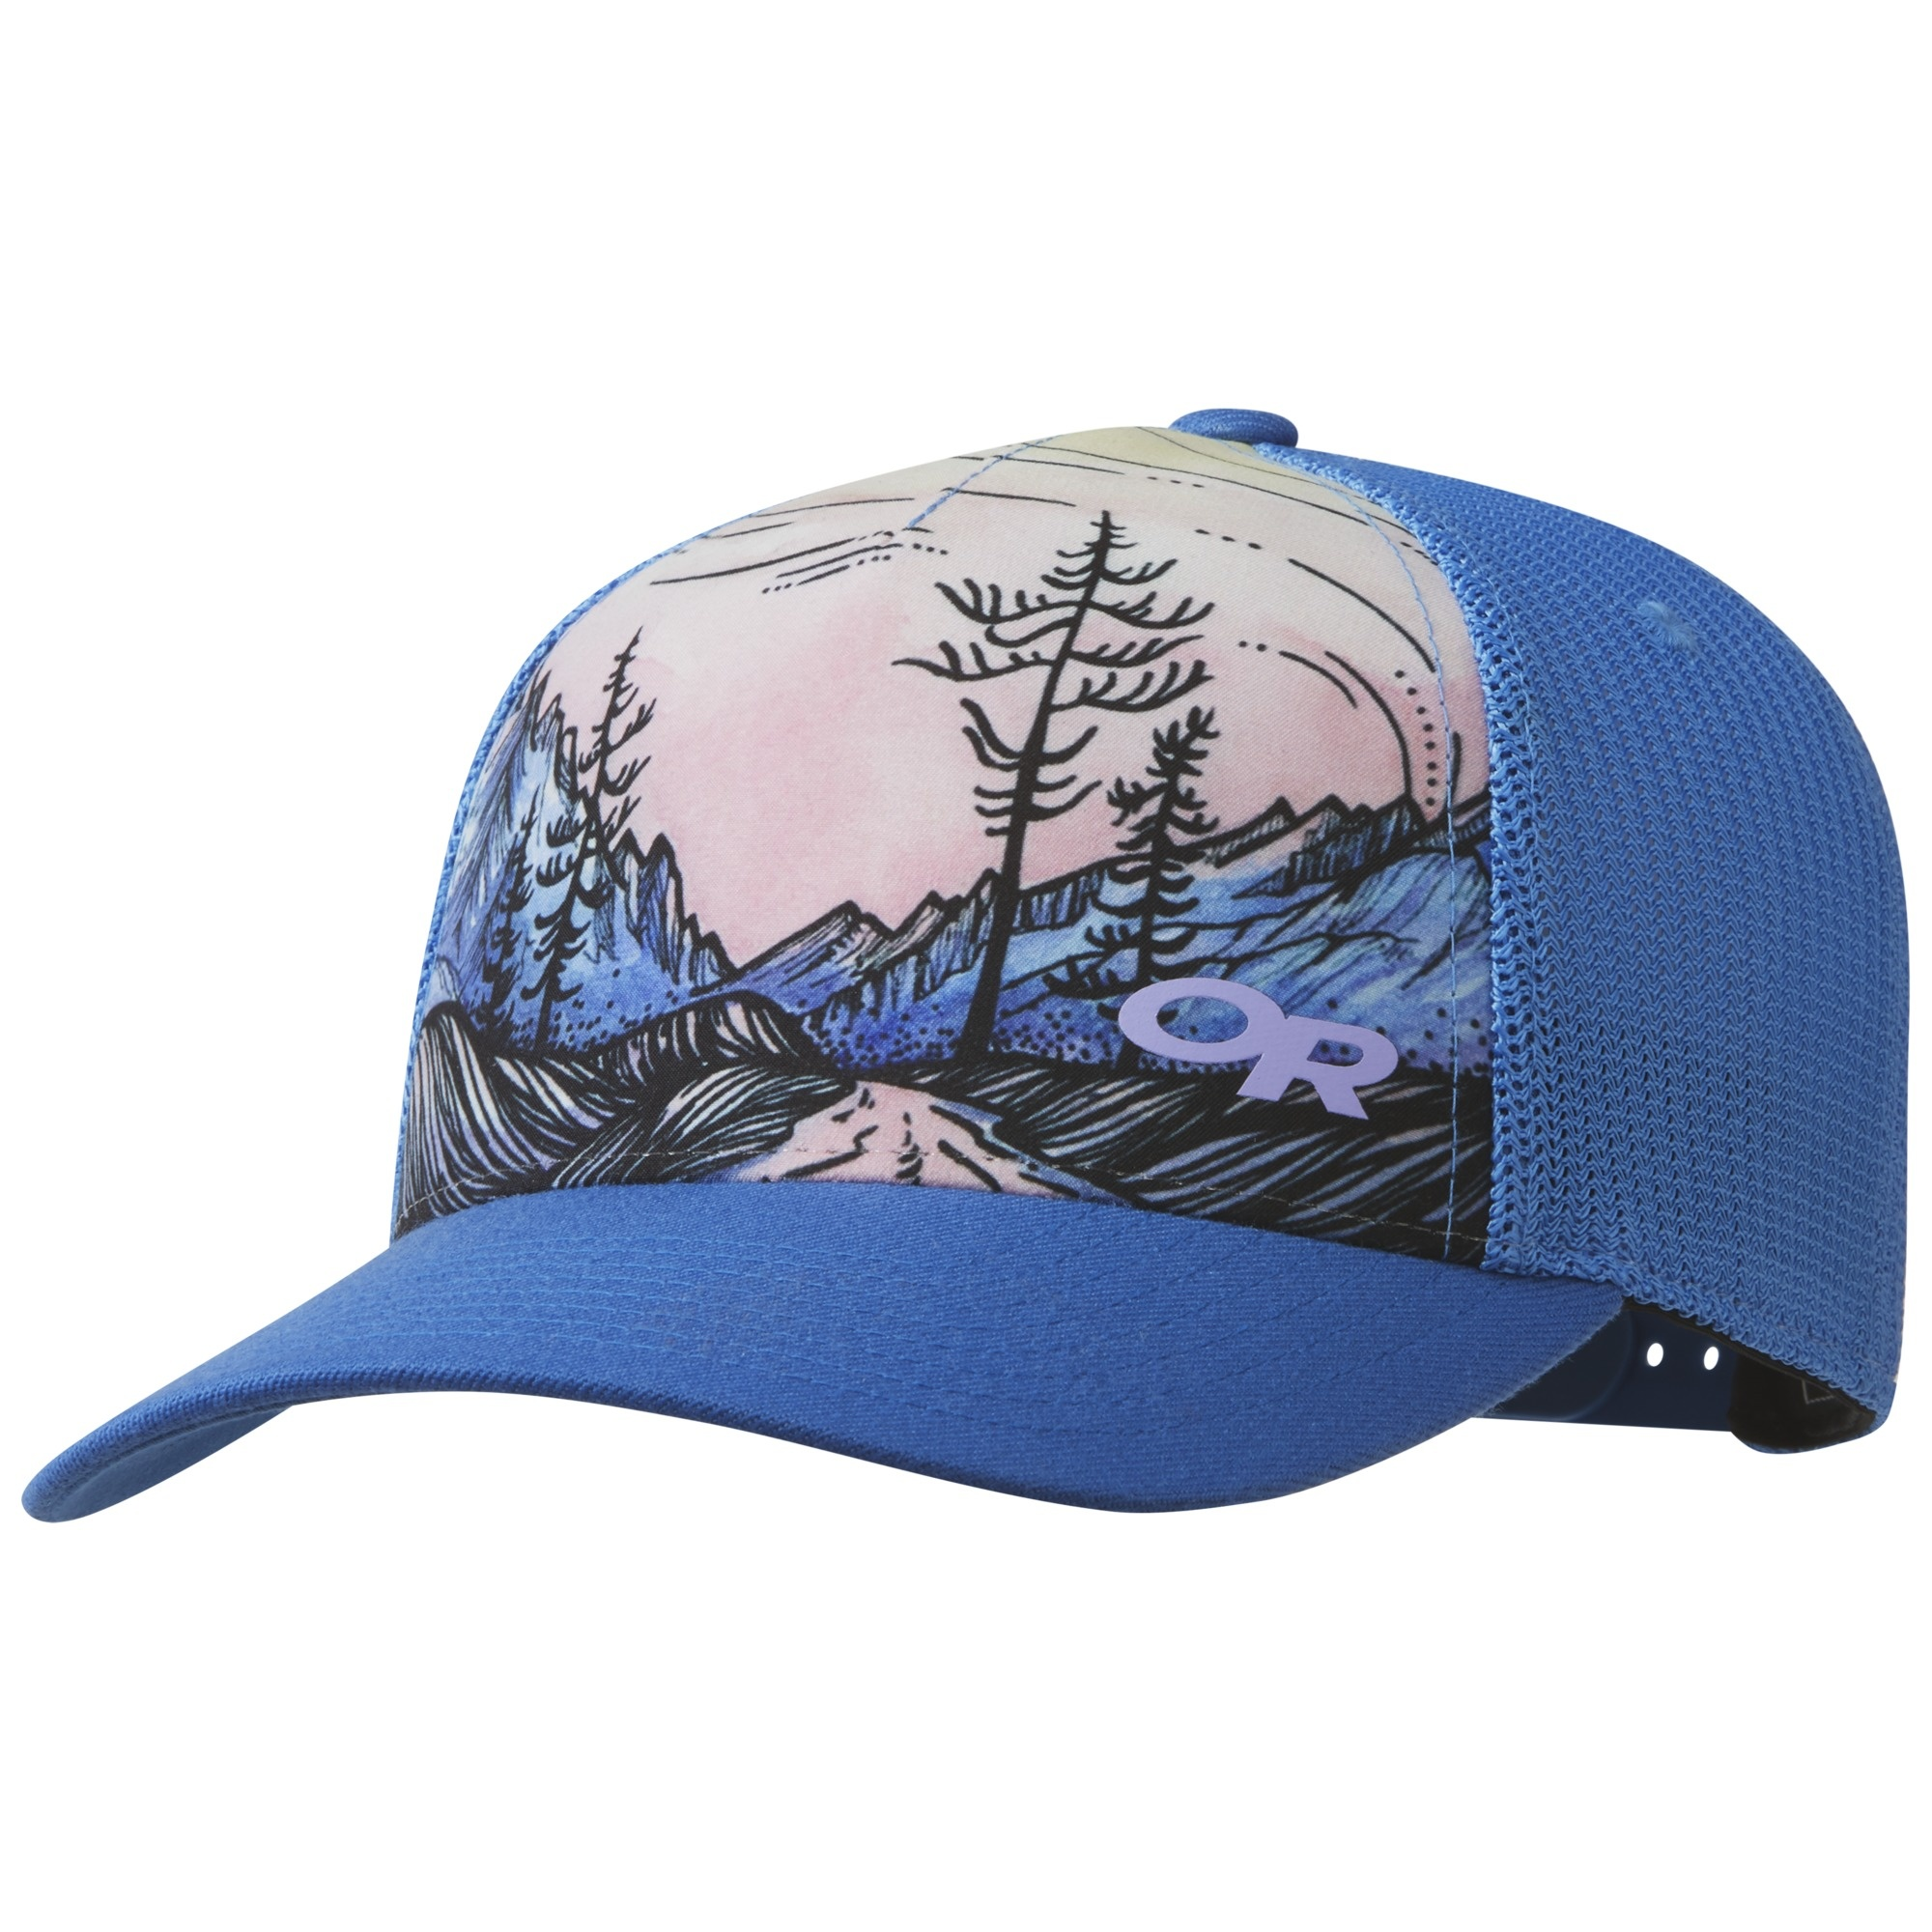 Outdoor Research Outdoor Research Alpen Glimmer Hat